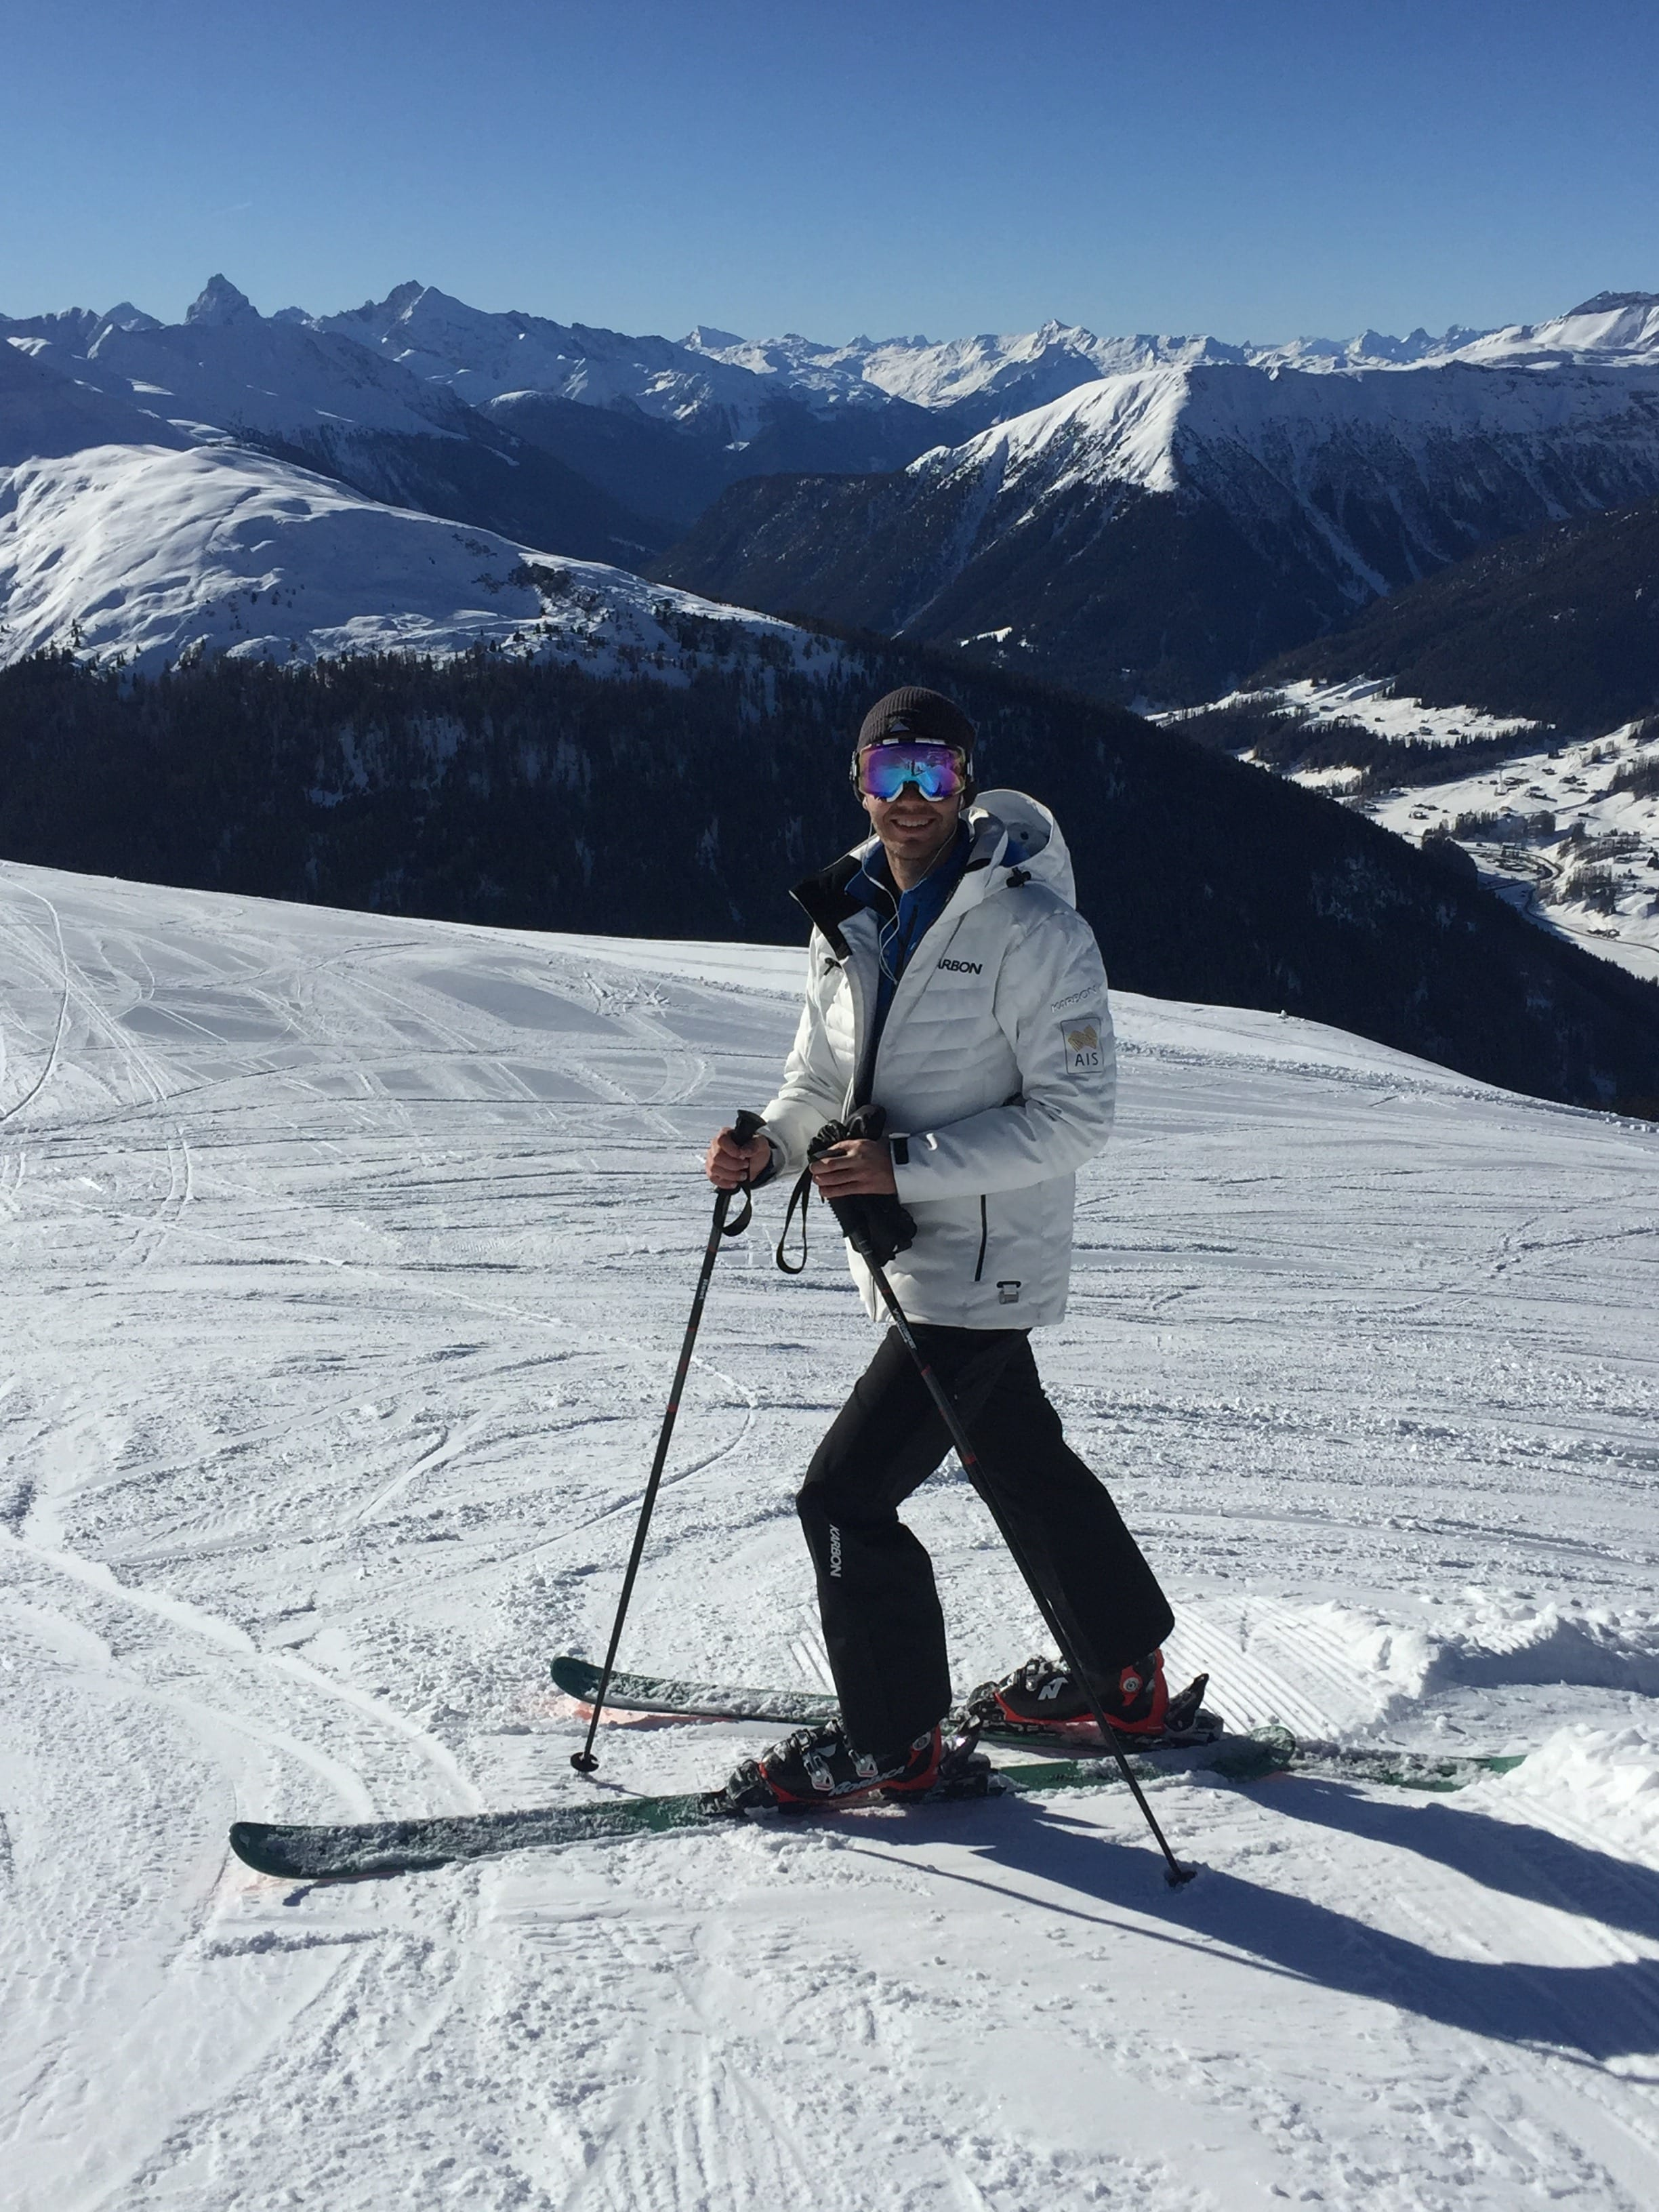 5 Common Skiing Injuries to Watch Out For